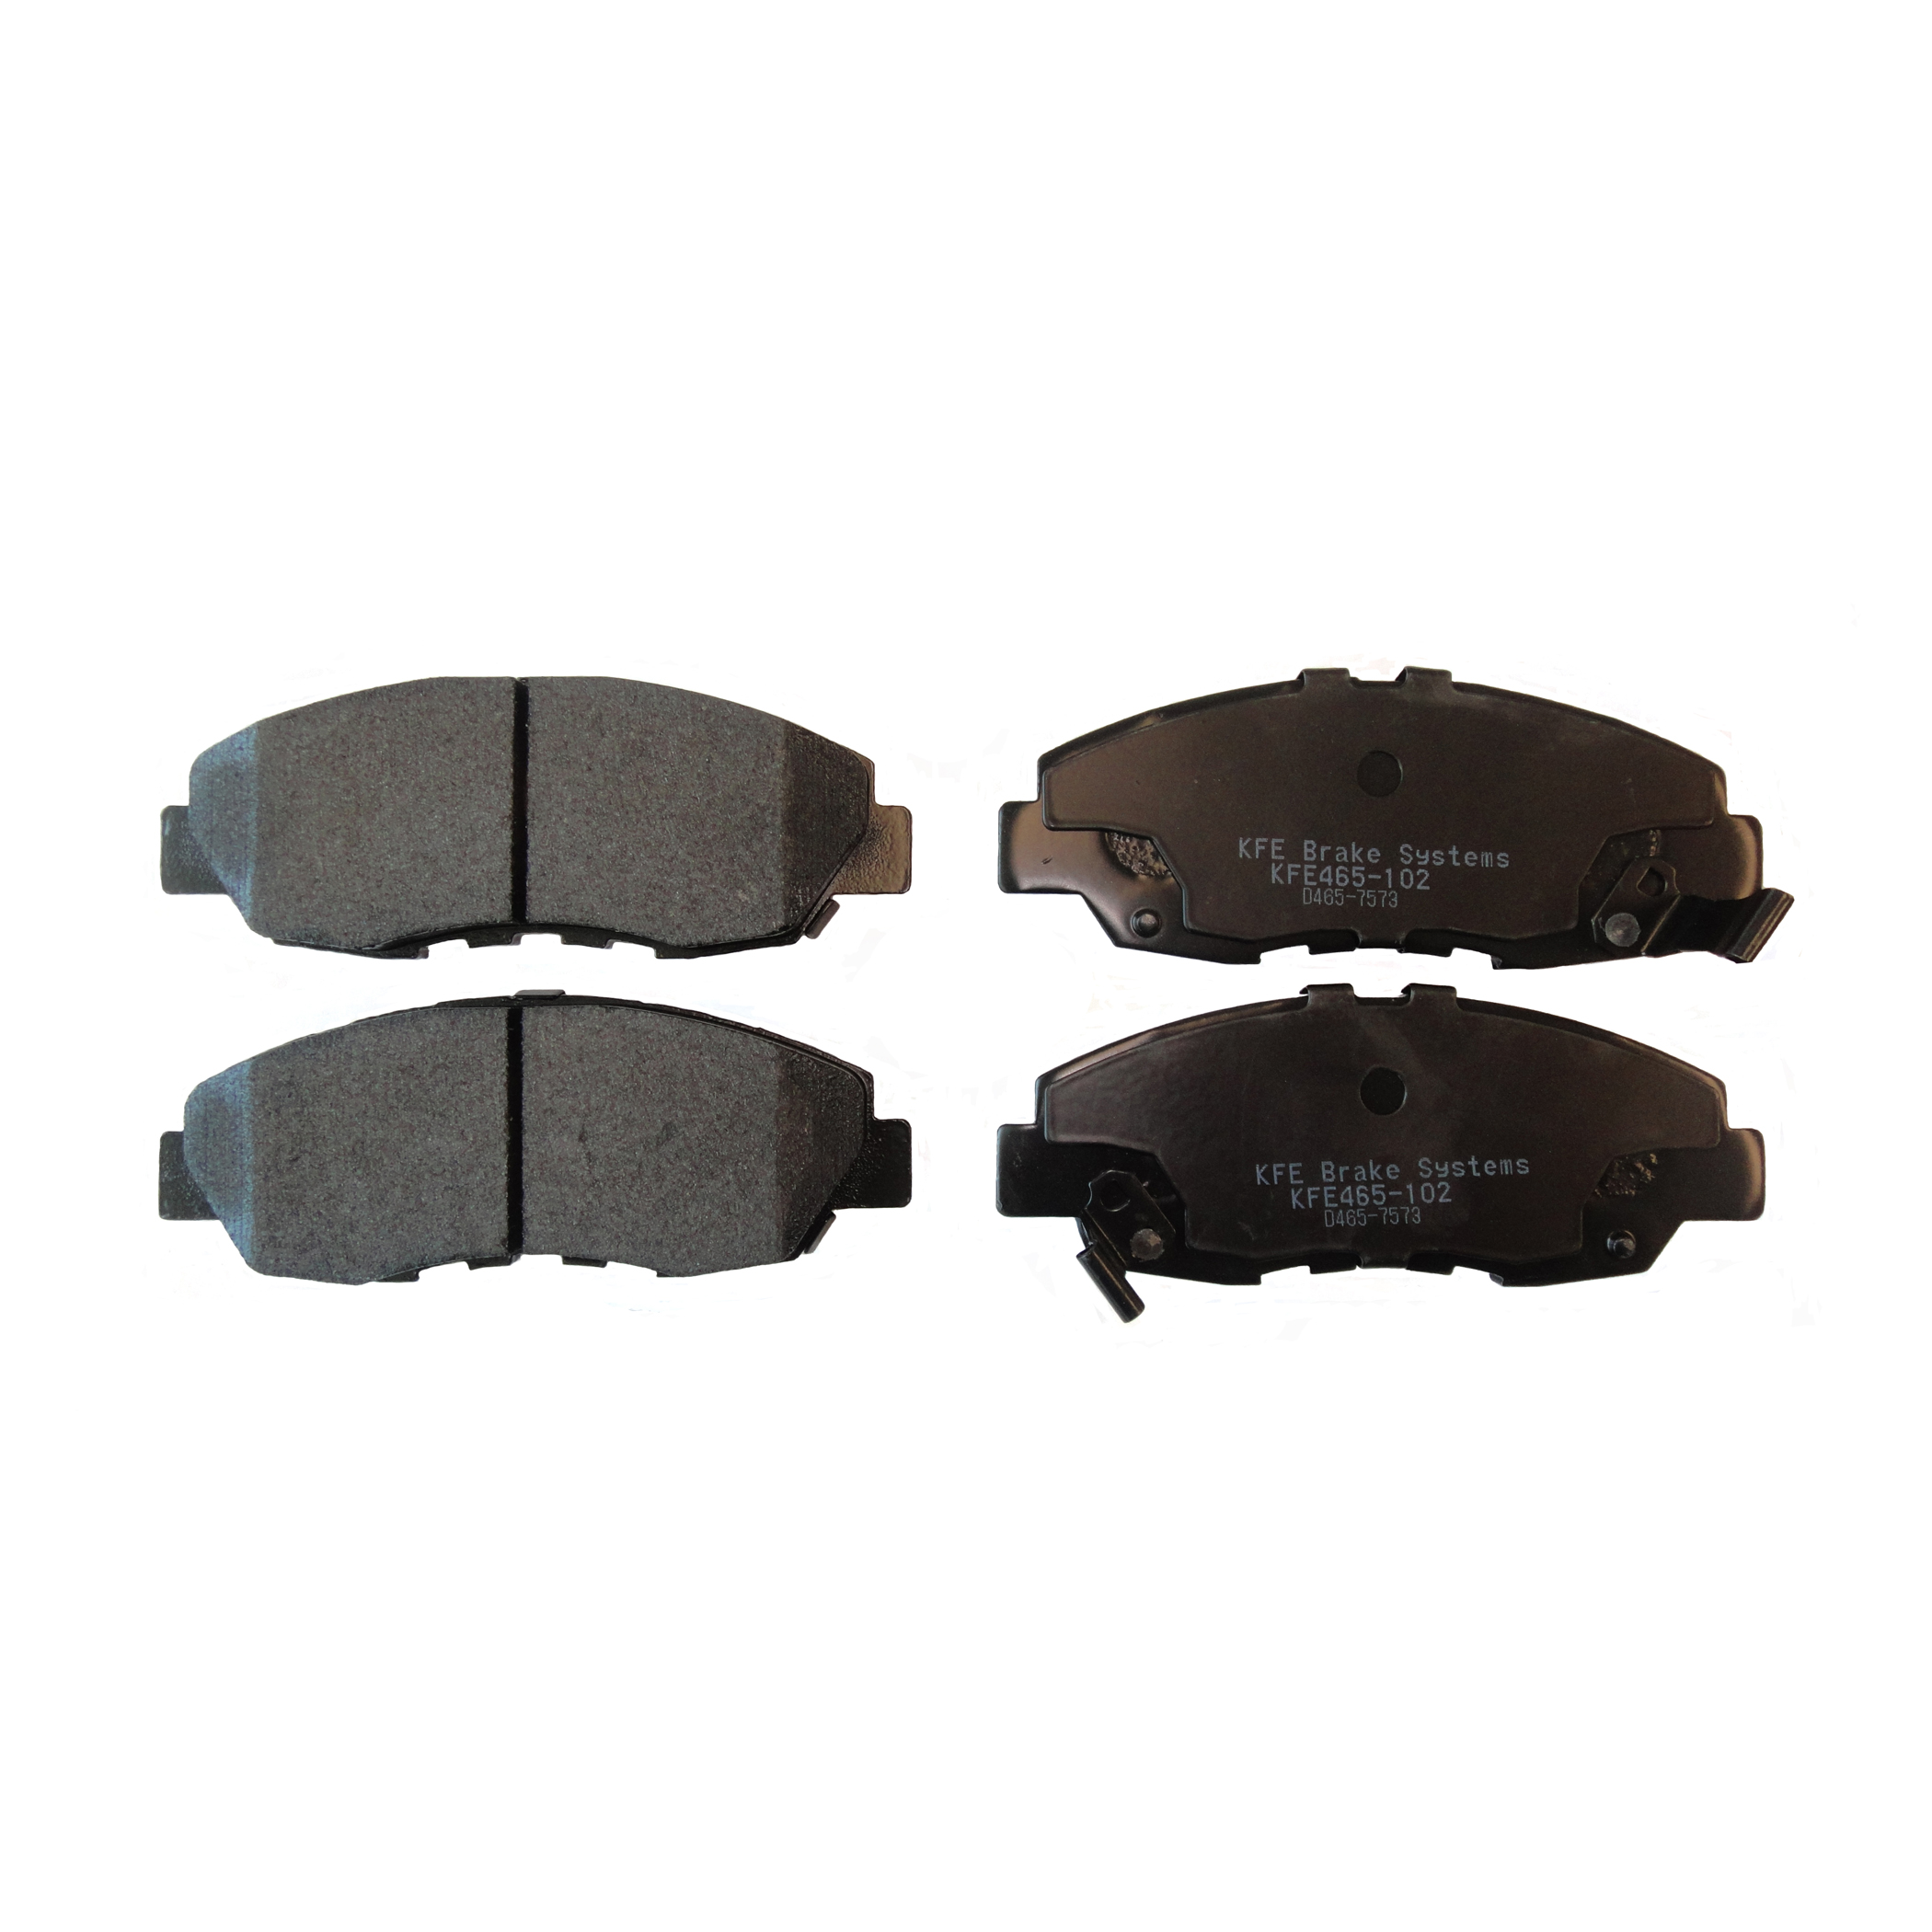 KFE465-102 Quiet Comfort OE Brake Pad